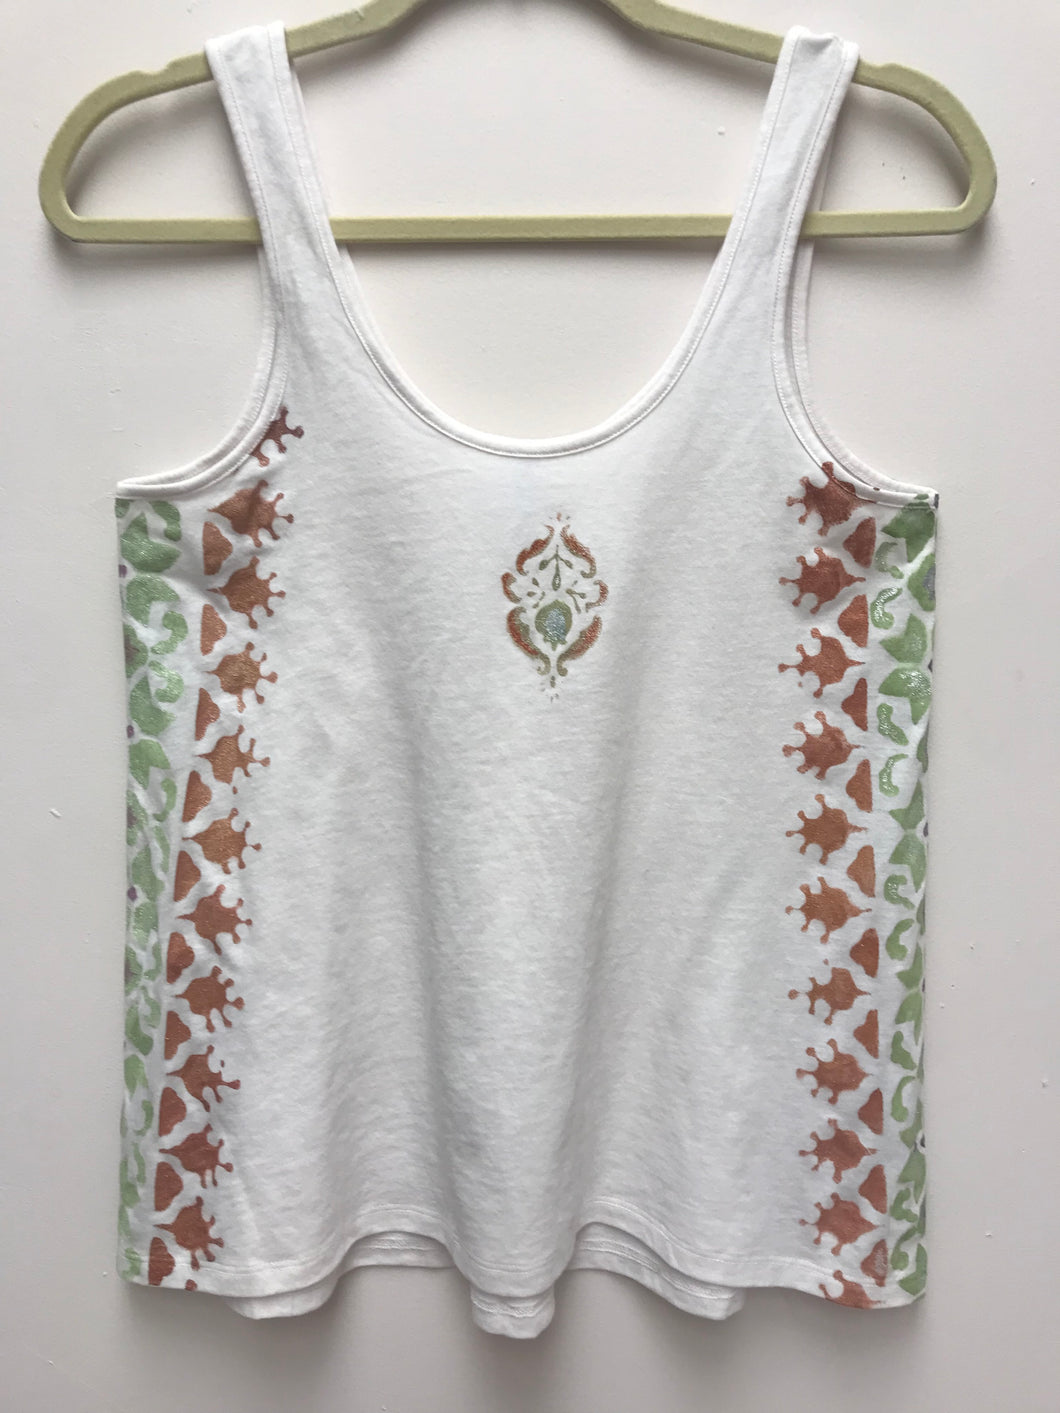 Relaxed fitting tank top with scoop neck and a back pleat in ecru, with a handprinted morroccan design printed on both sides of shirt with a center motif in front.